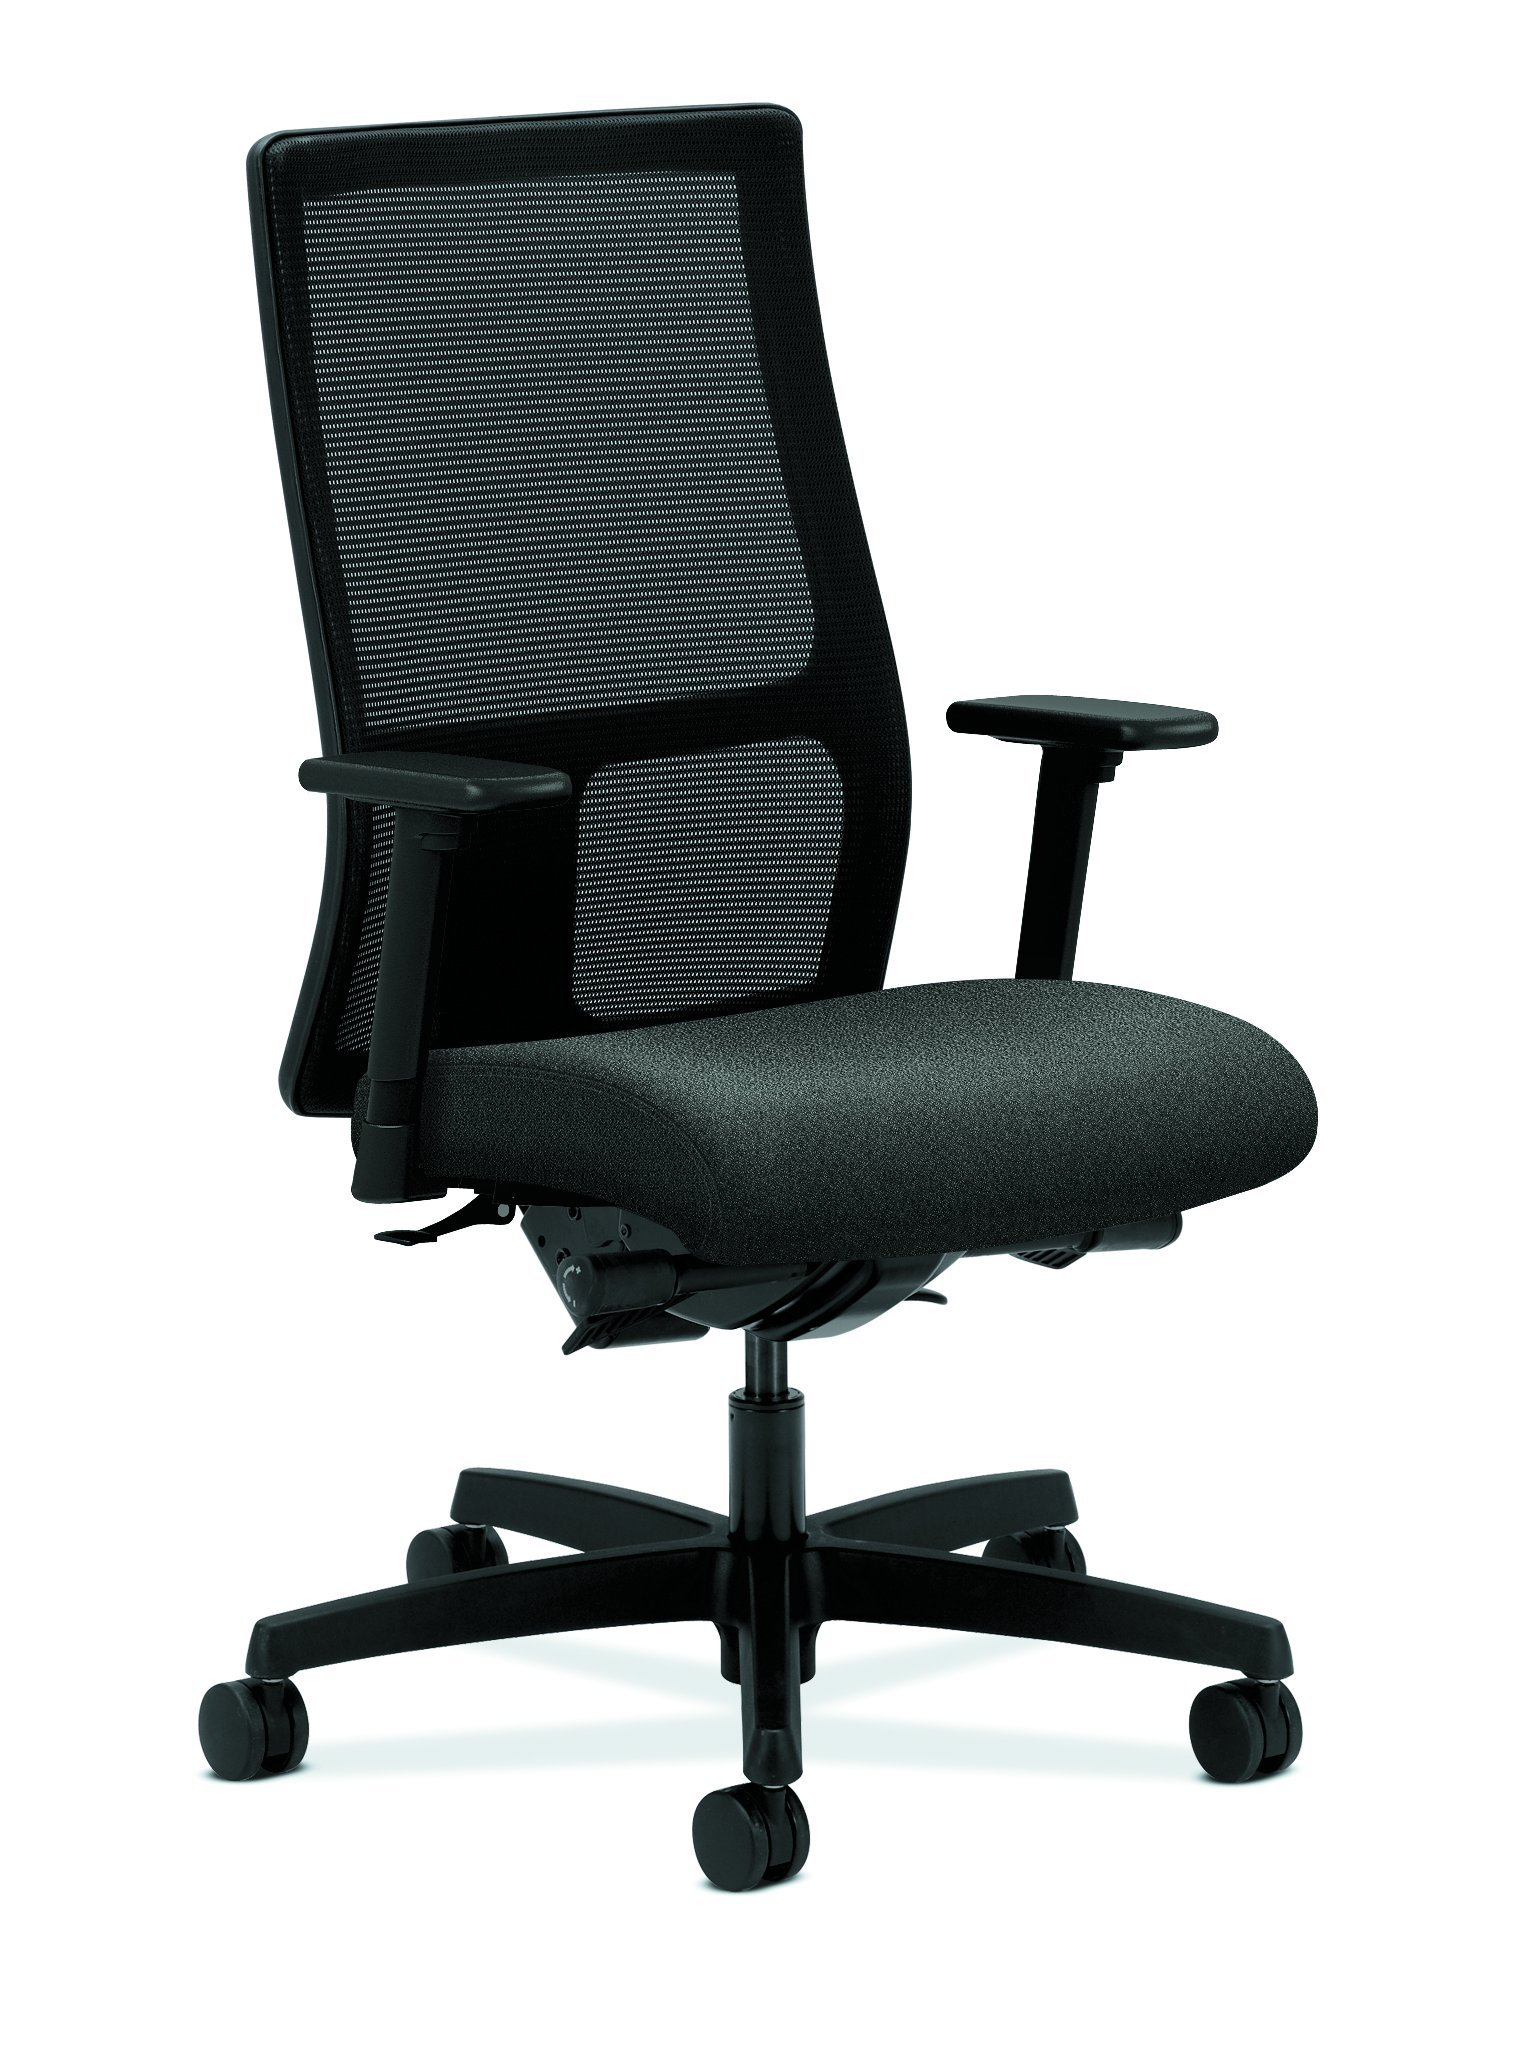 HON Ignition Series Mid-Back Work Chair - Mesh Computer Chair for Office Desk, Gray (HIWM3)